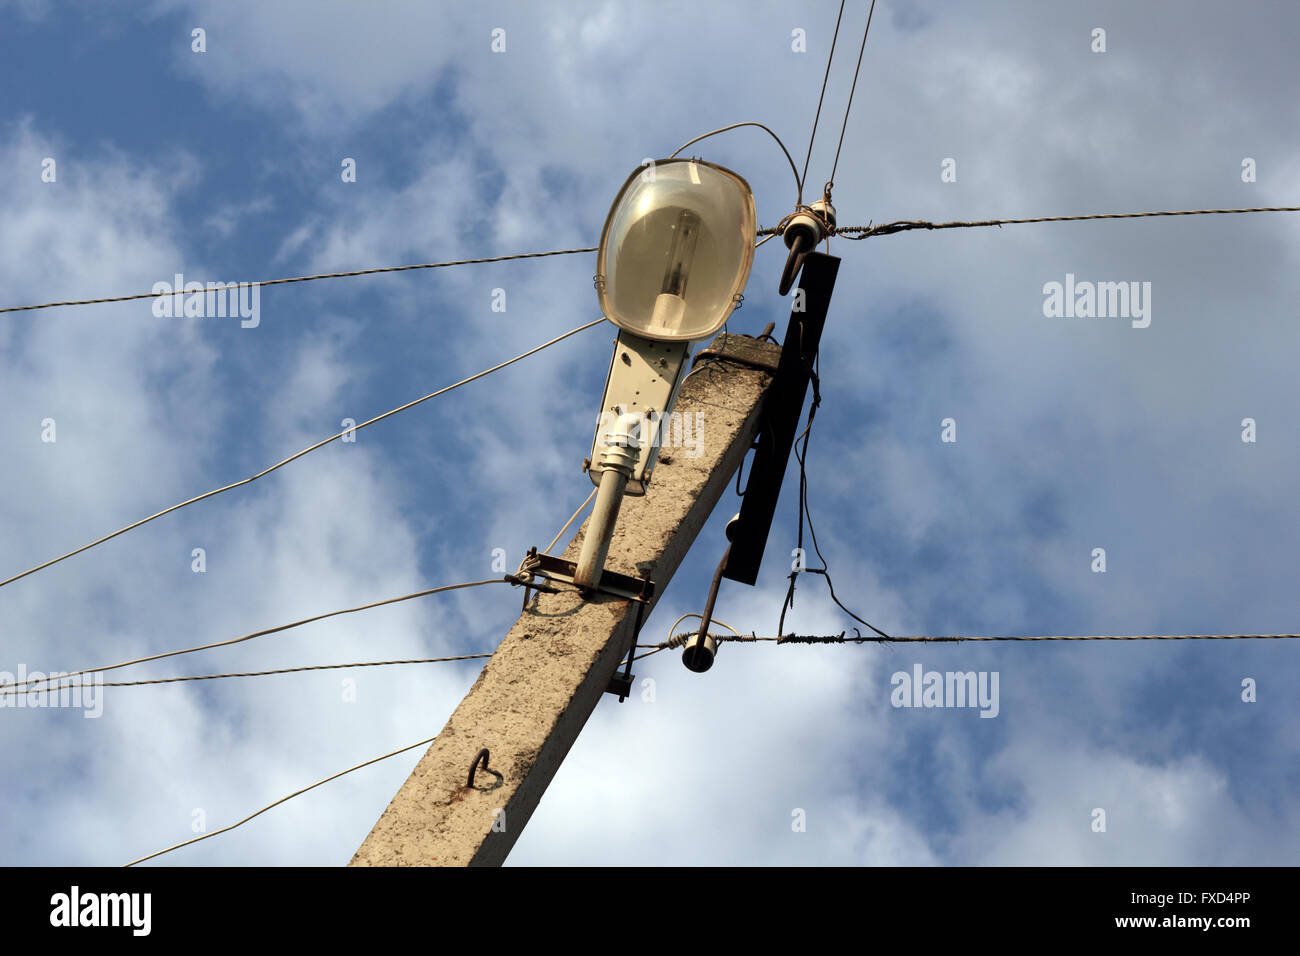 electrical wire support column stock photos electrical wire rh alamy com Electrical Outlet Wiring Diagram Electrical Outlet Wiring Diagram